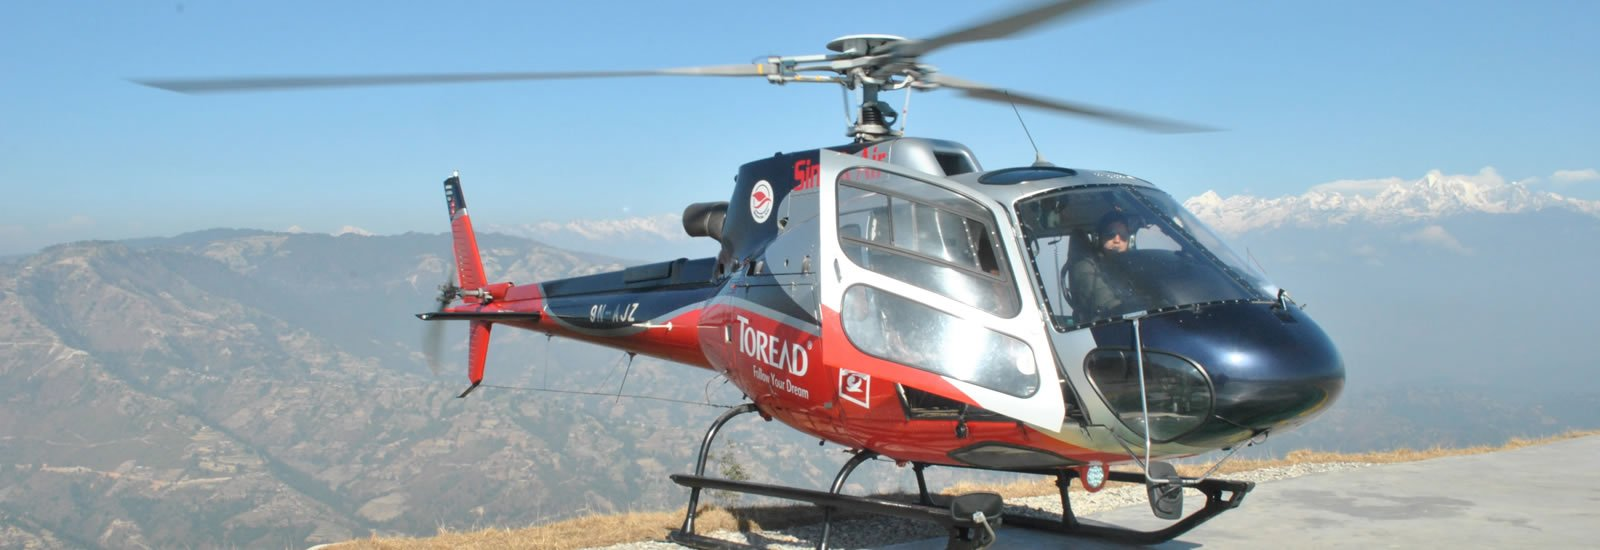 Langtang Helicopter Tours